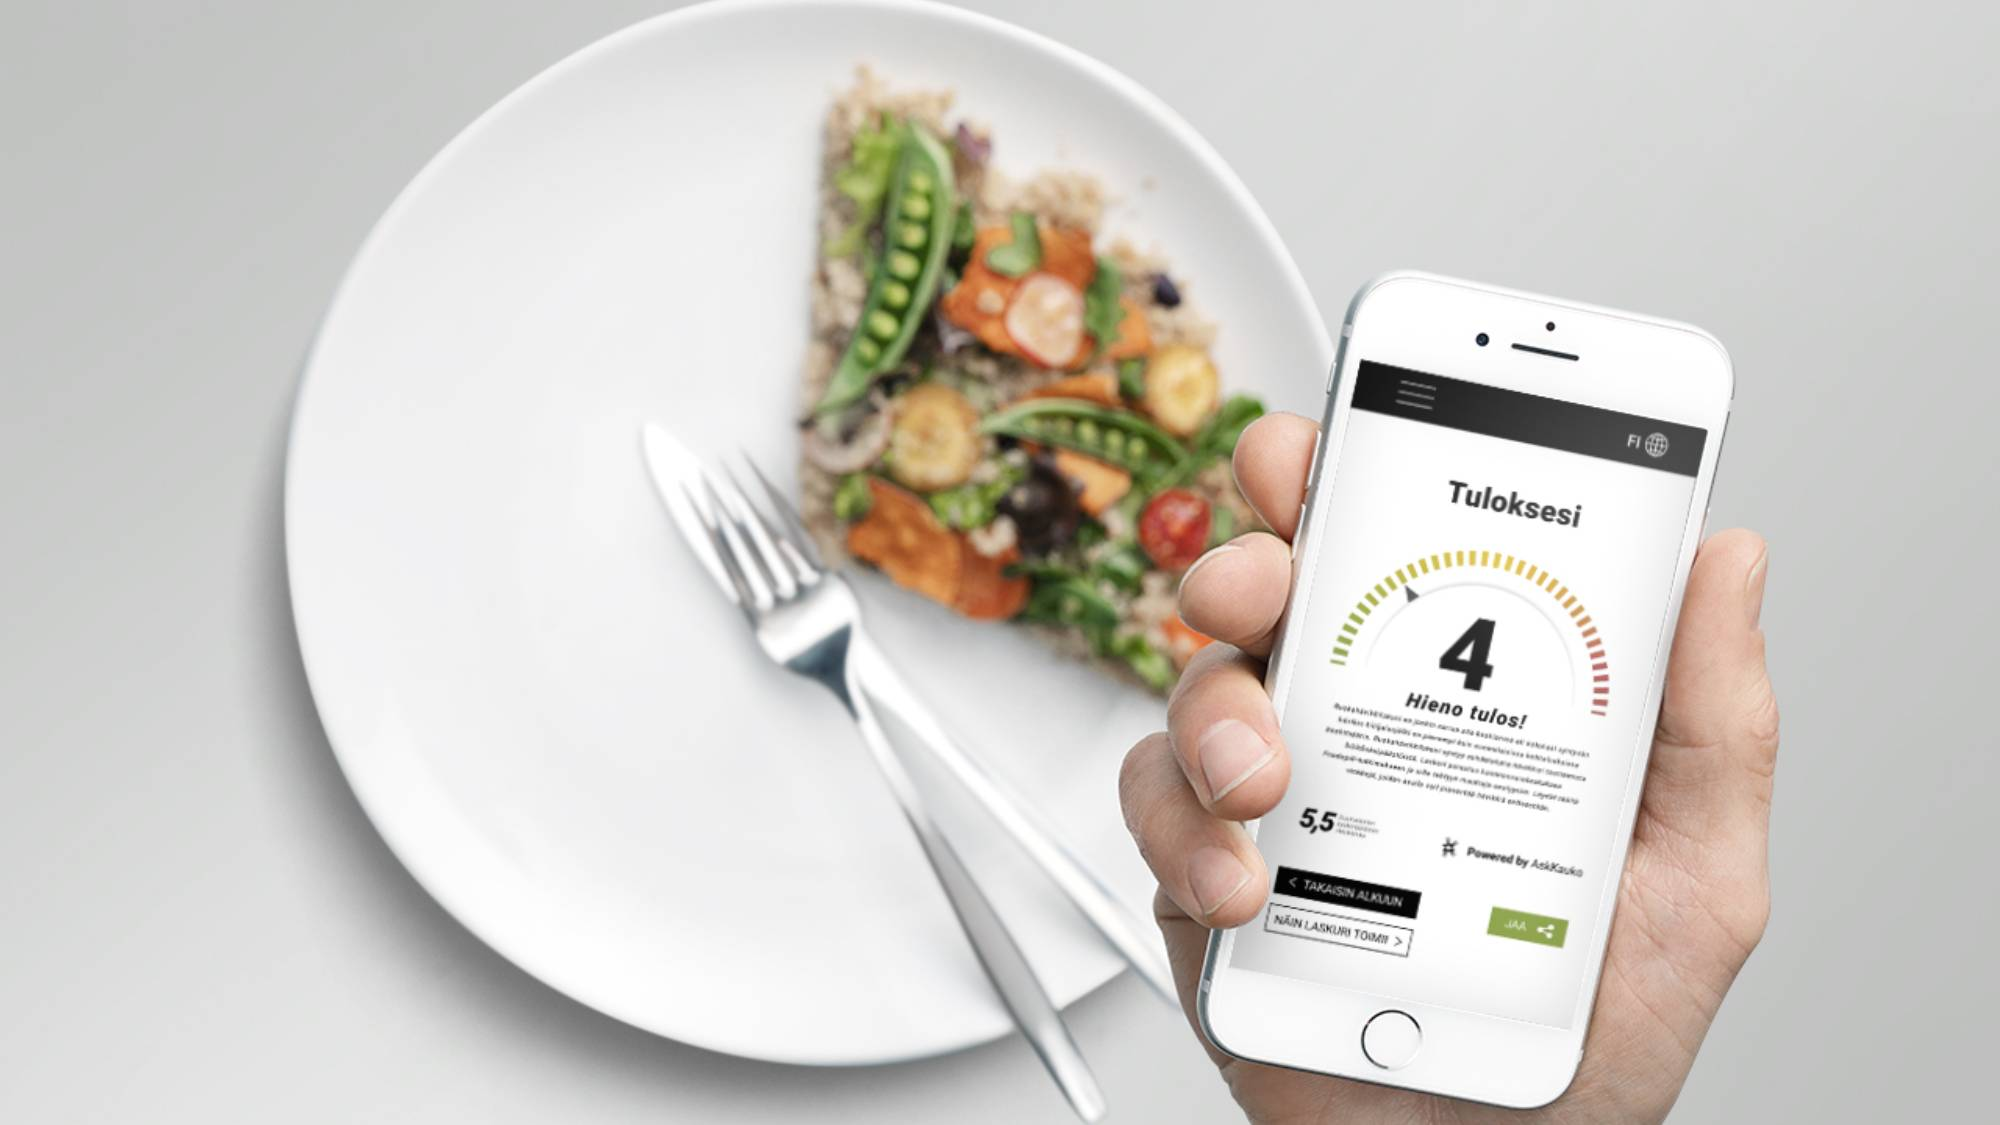 A hand holding a smartphone over a plate of leftover food.